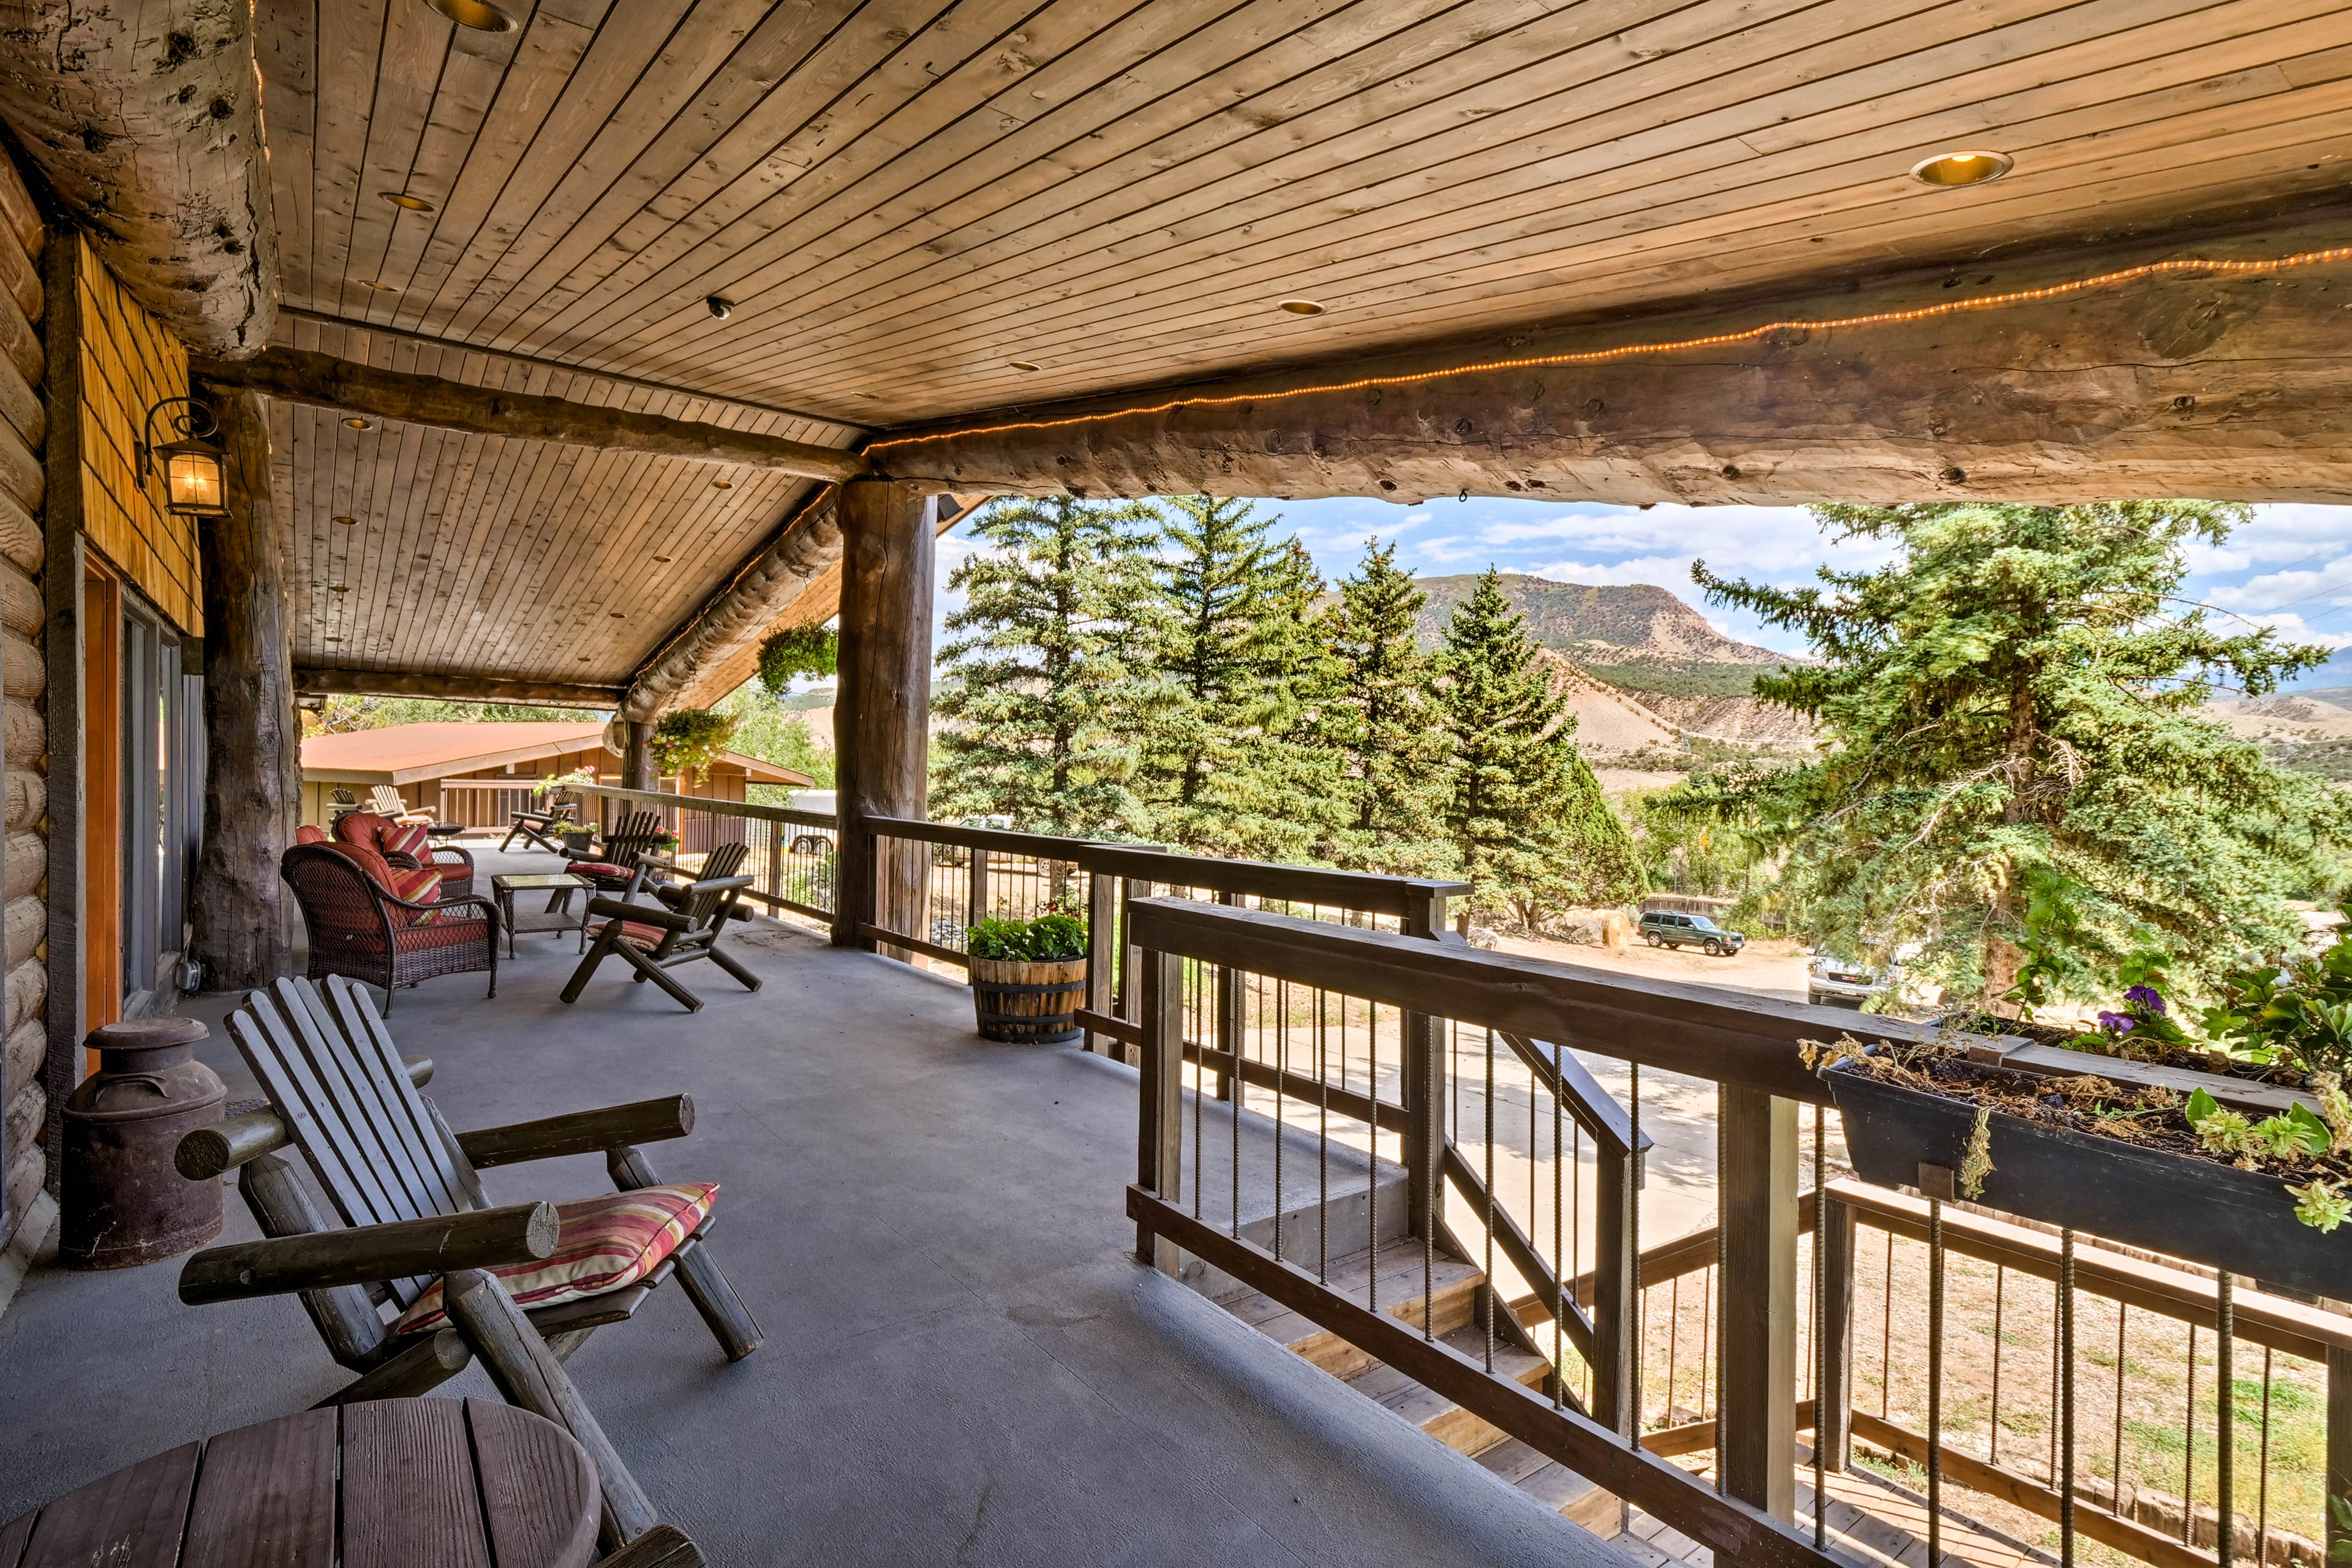 You won't want to leave the front porch with views like this.